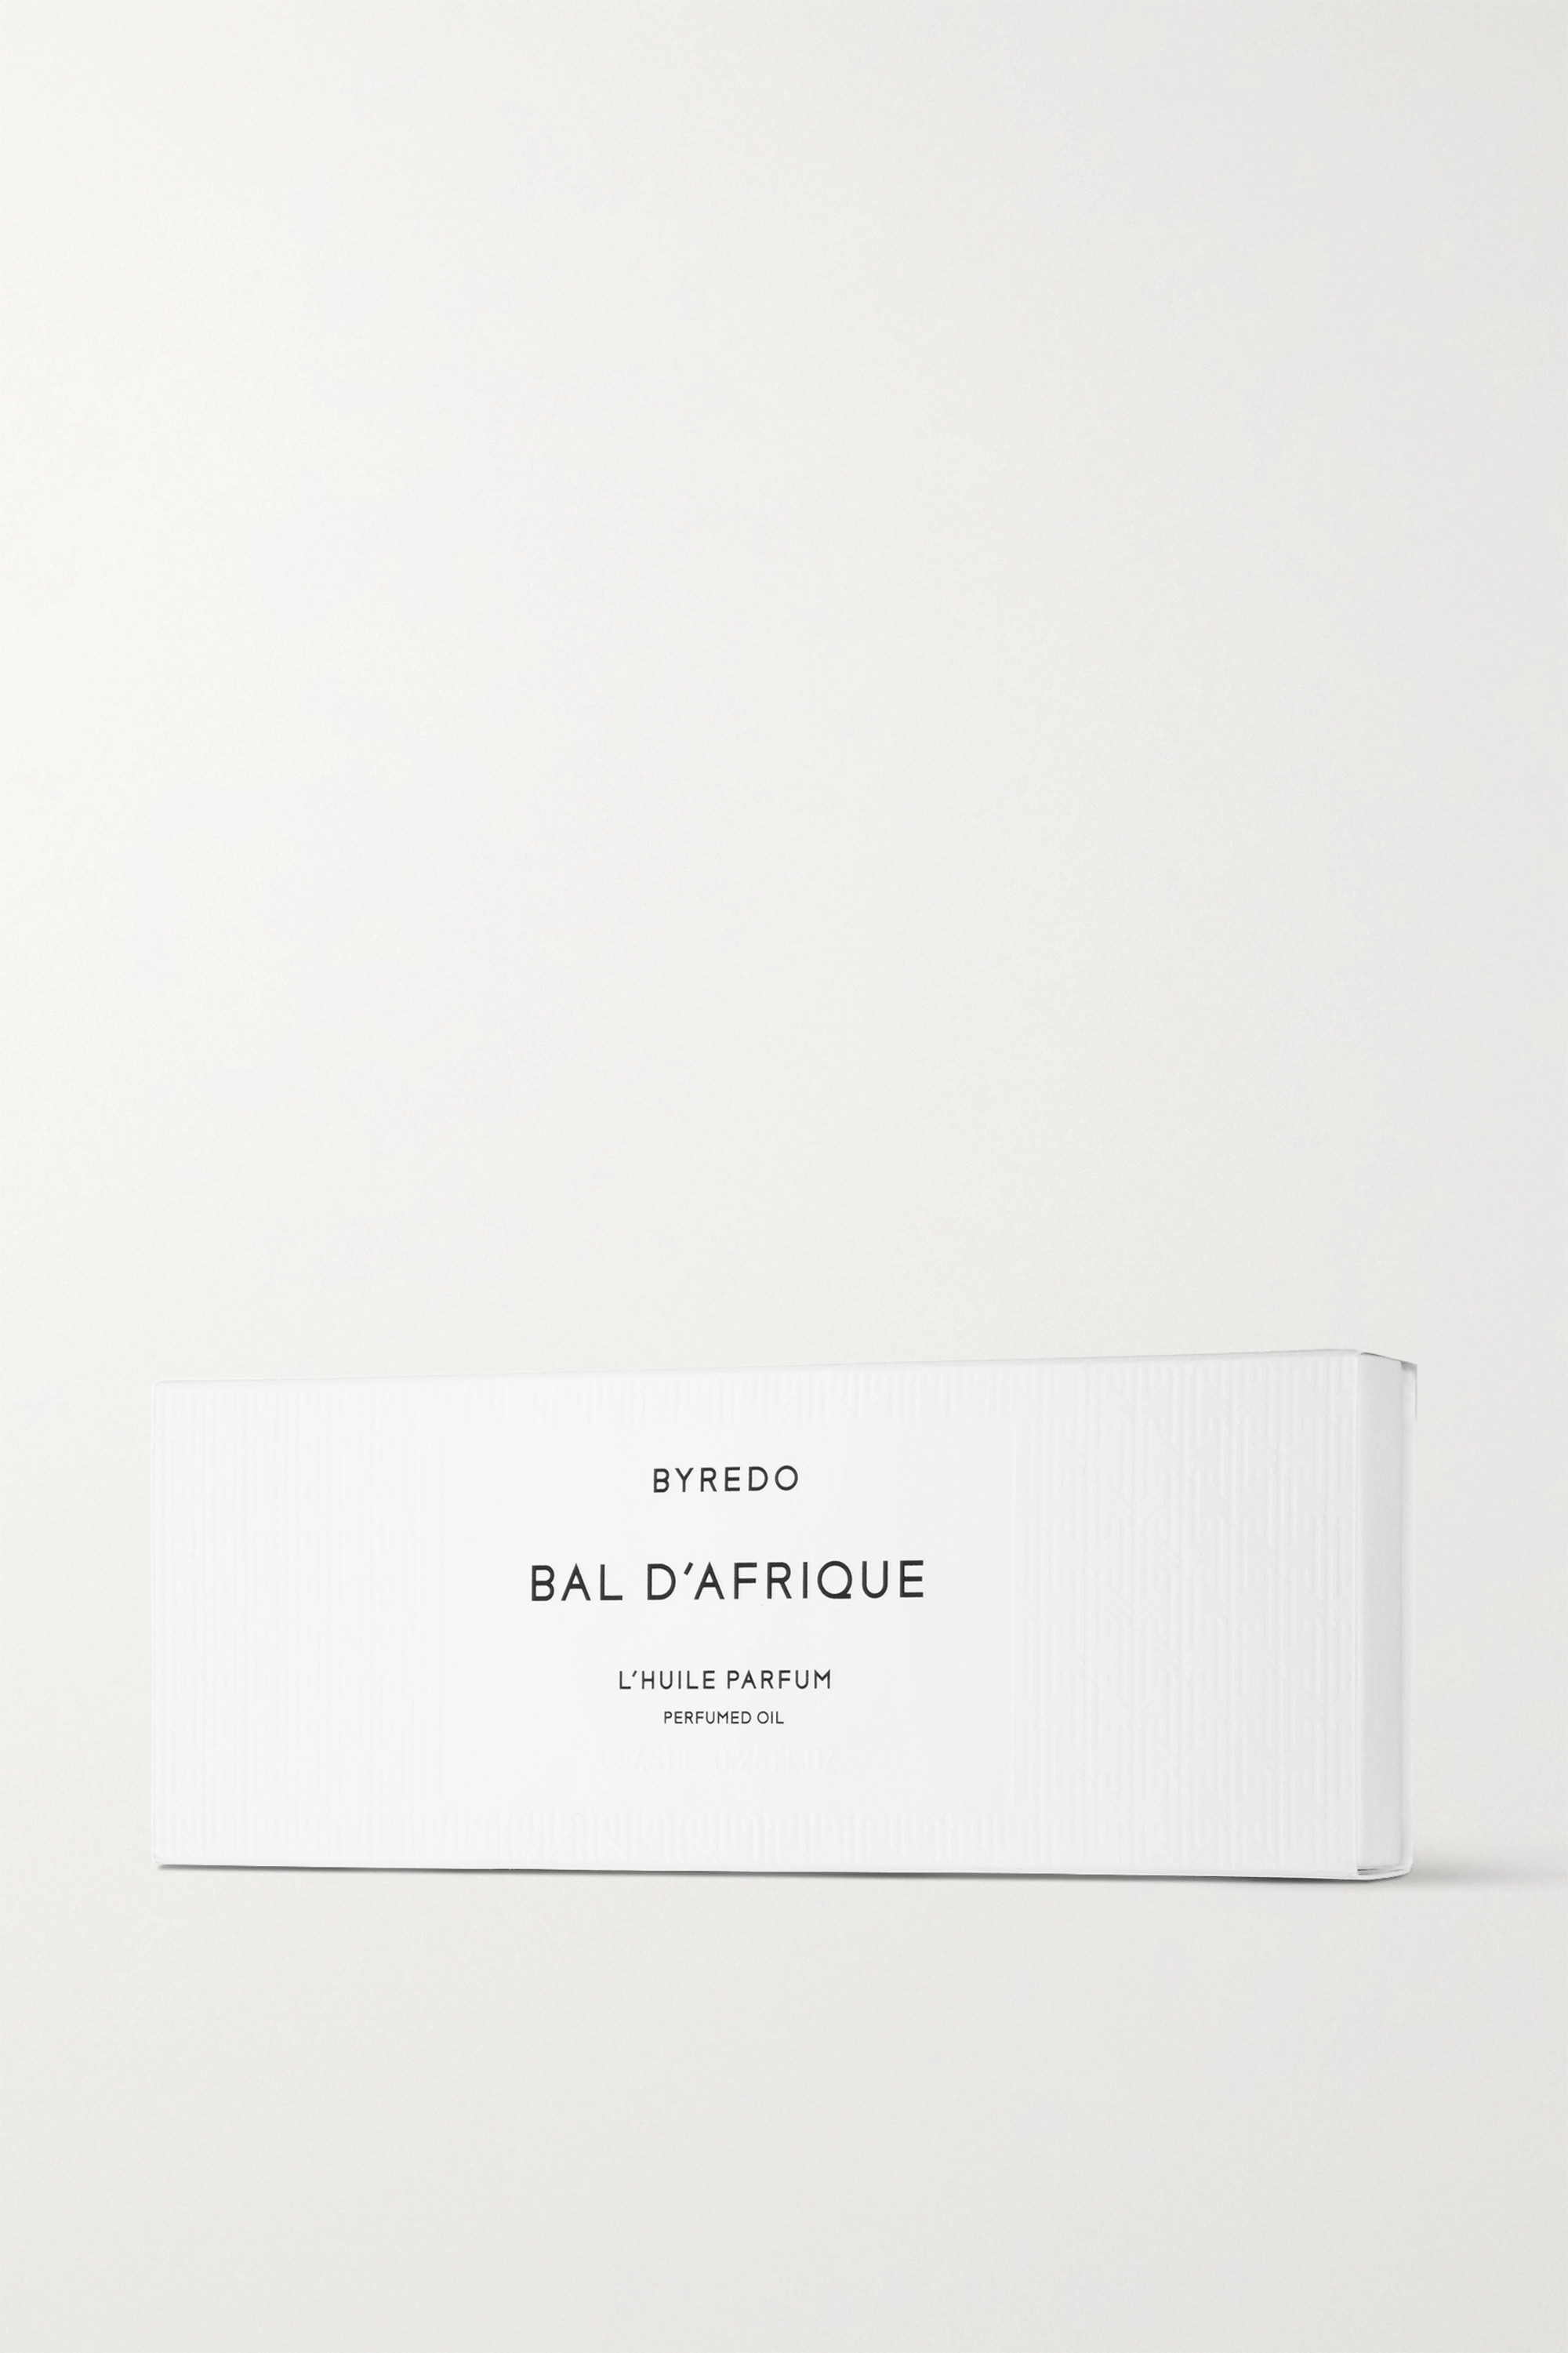 BYREDO Perfumed Oil Roll-On - Bal d'Afrique, 7.5ml